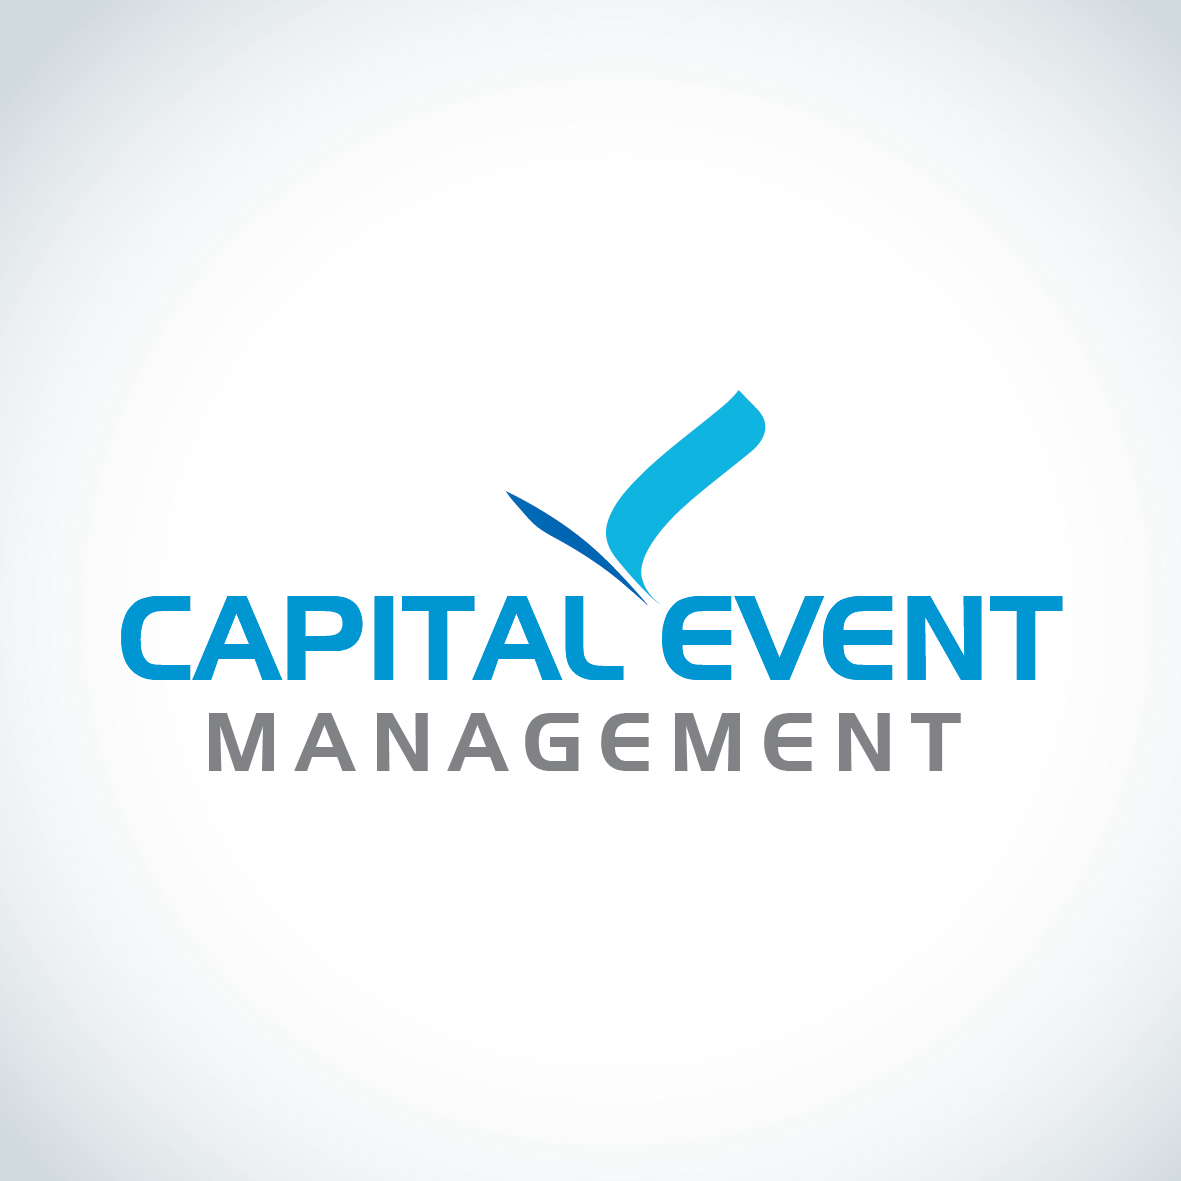 Logo Design by aesthetic-art - Entry No. 22 in the Logo Design Contest Capital Event Management.